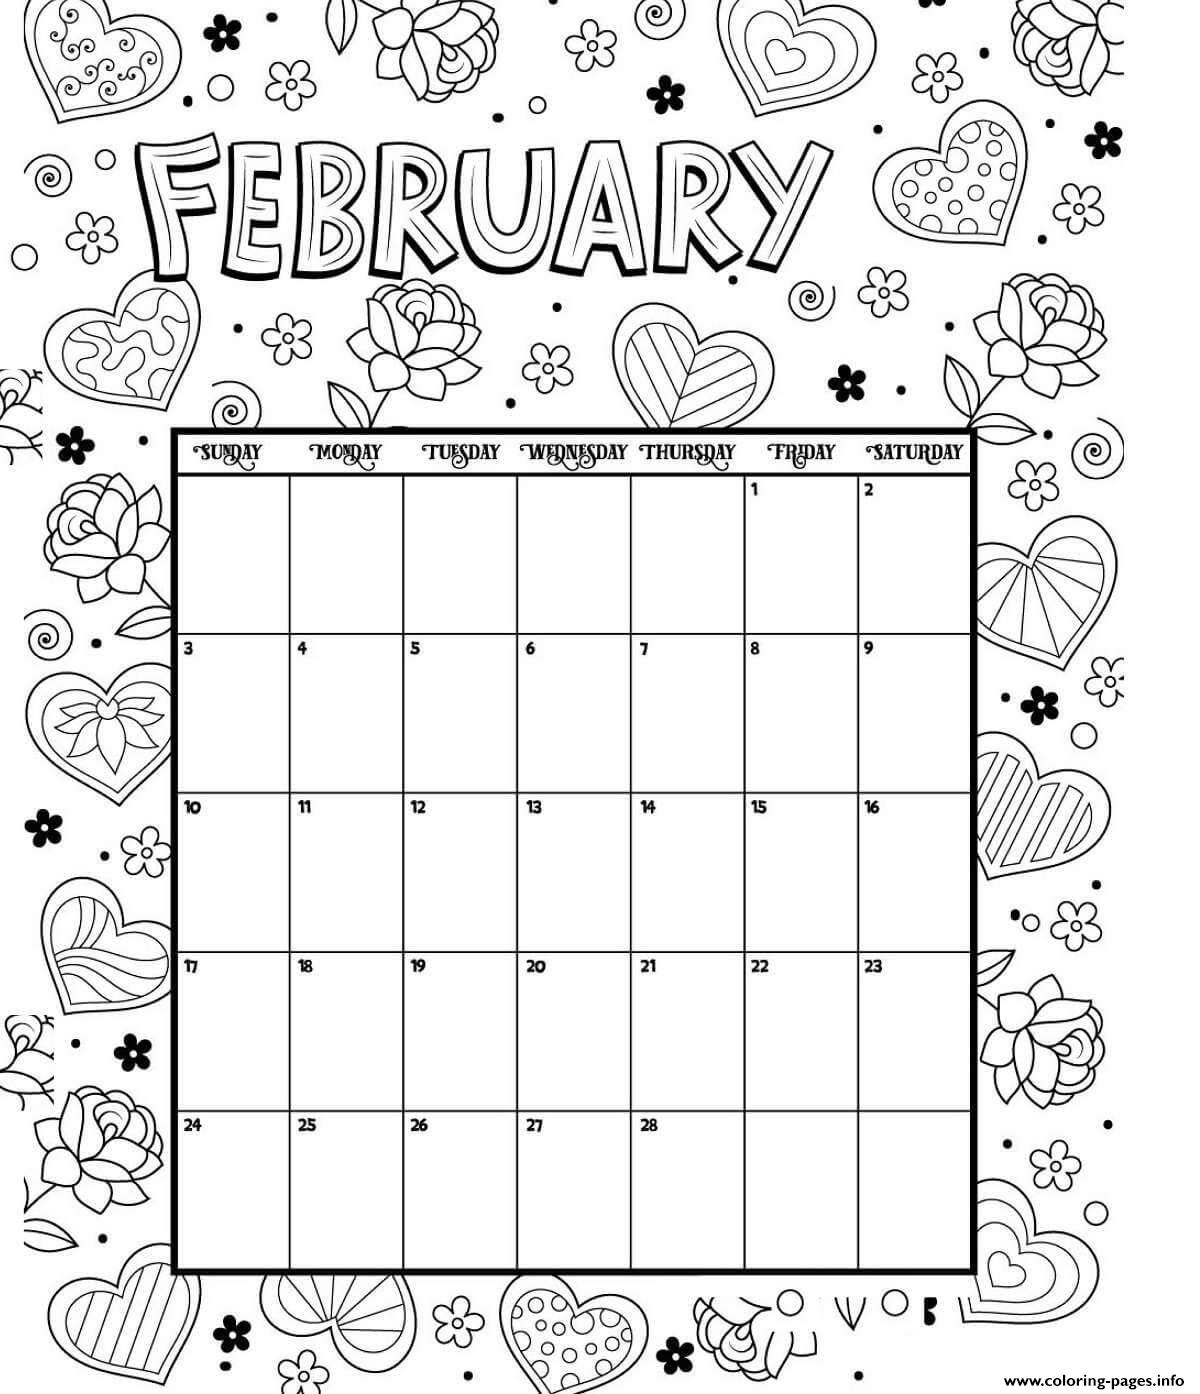 February Coloring Calendar Valentines Coloring Pages Printable